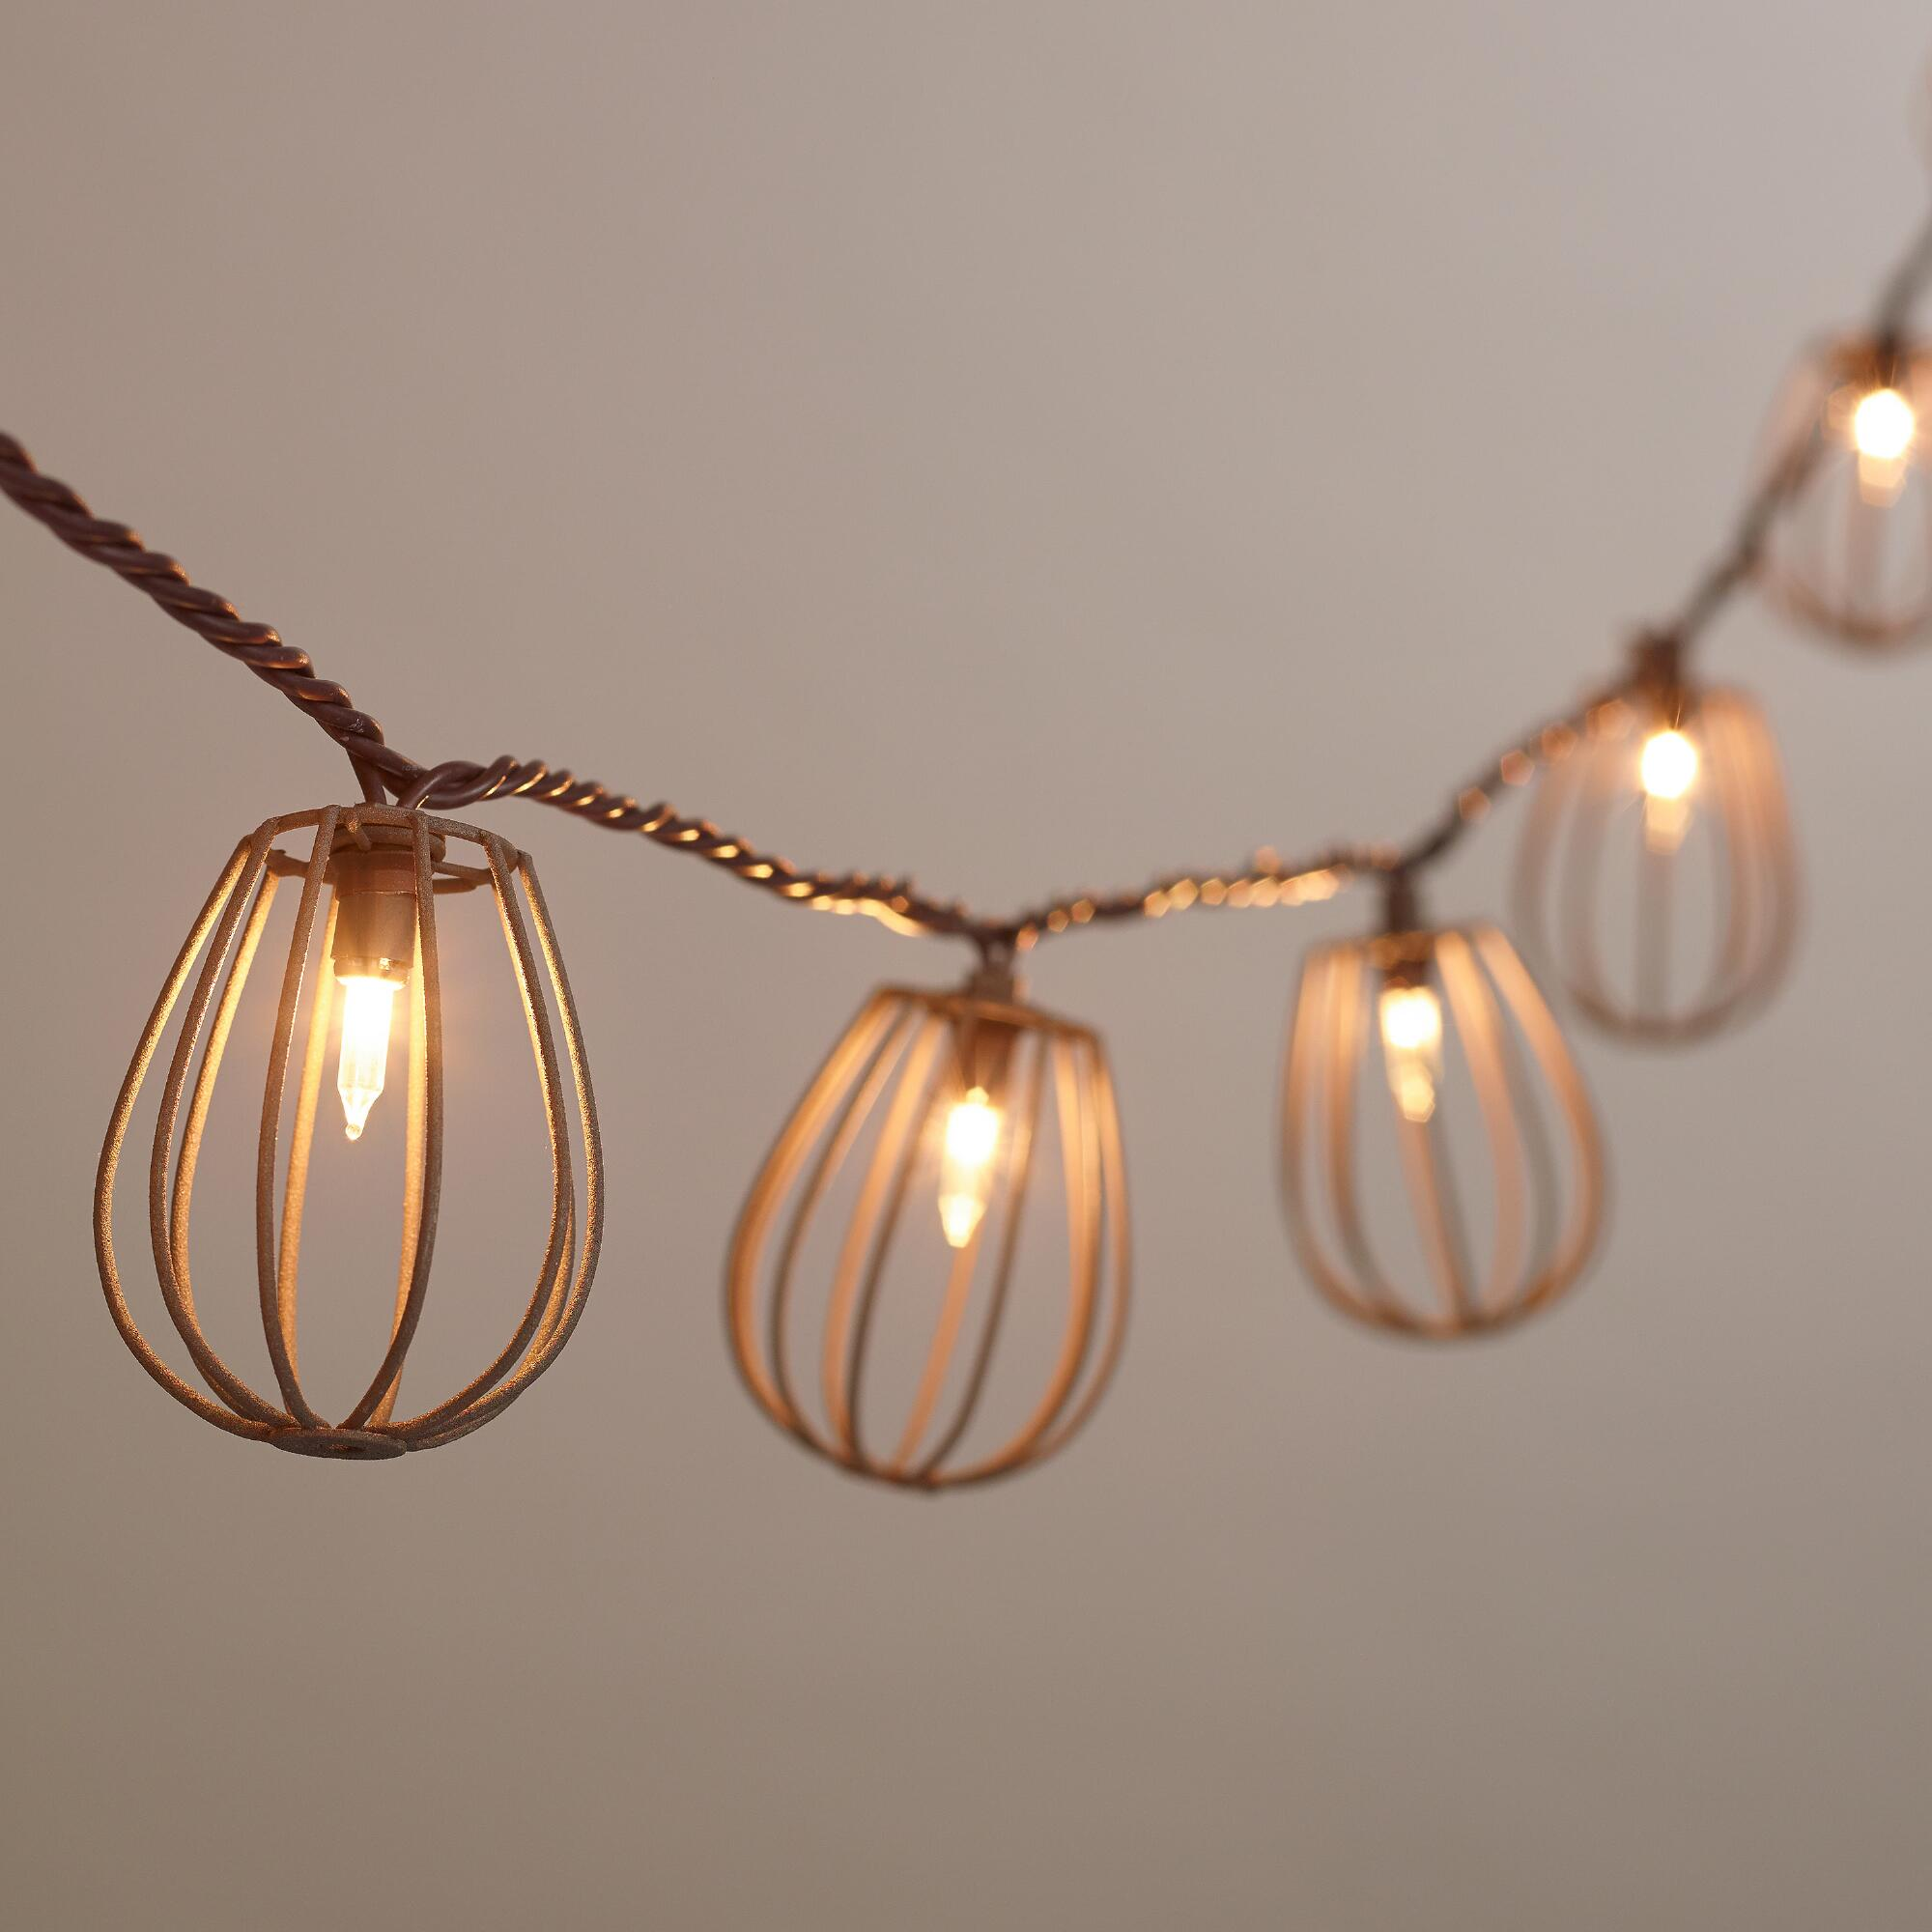 Rustic Indoor String Lights : Rustic Wire Cage 10-Bulb String Lights World Market